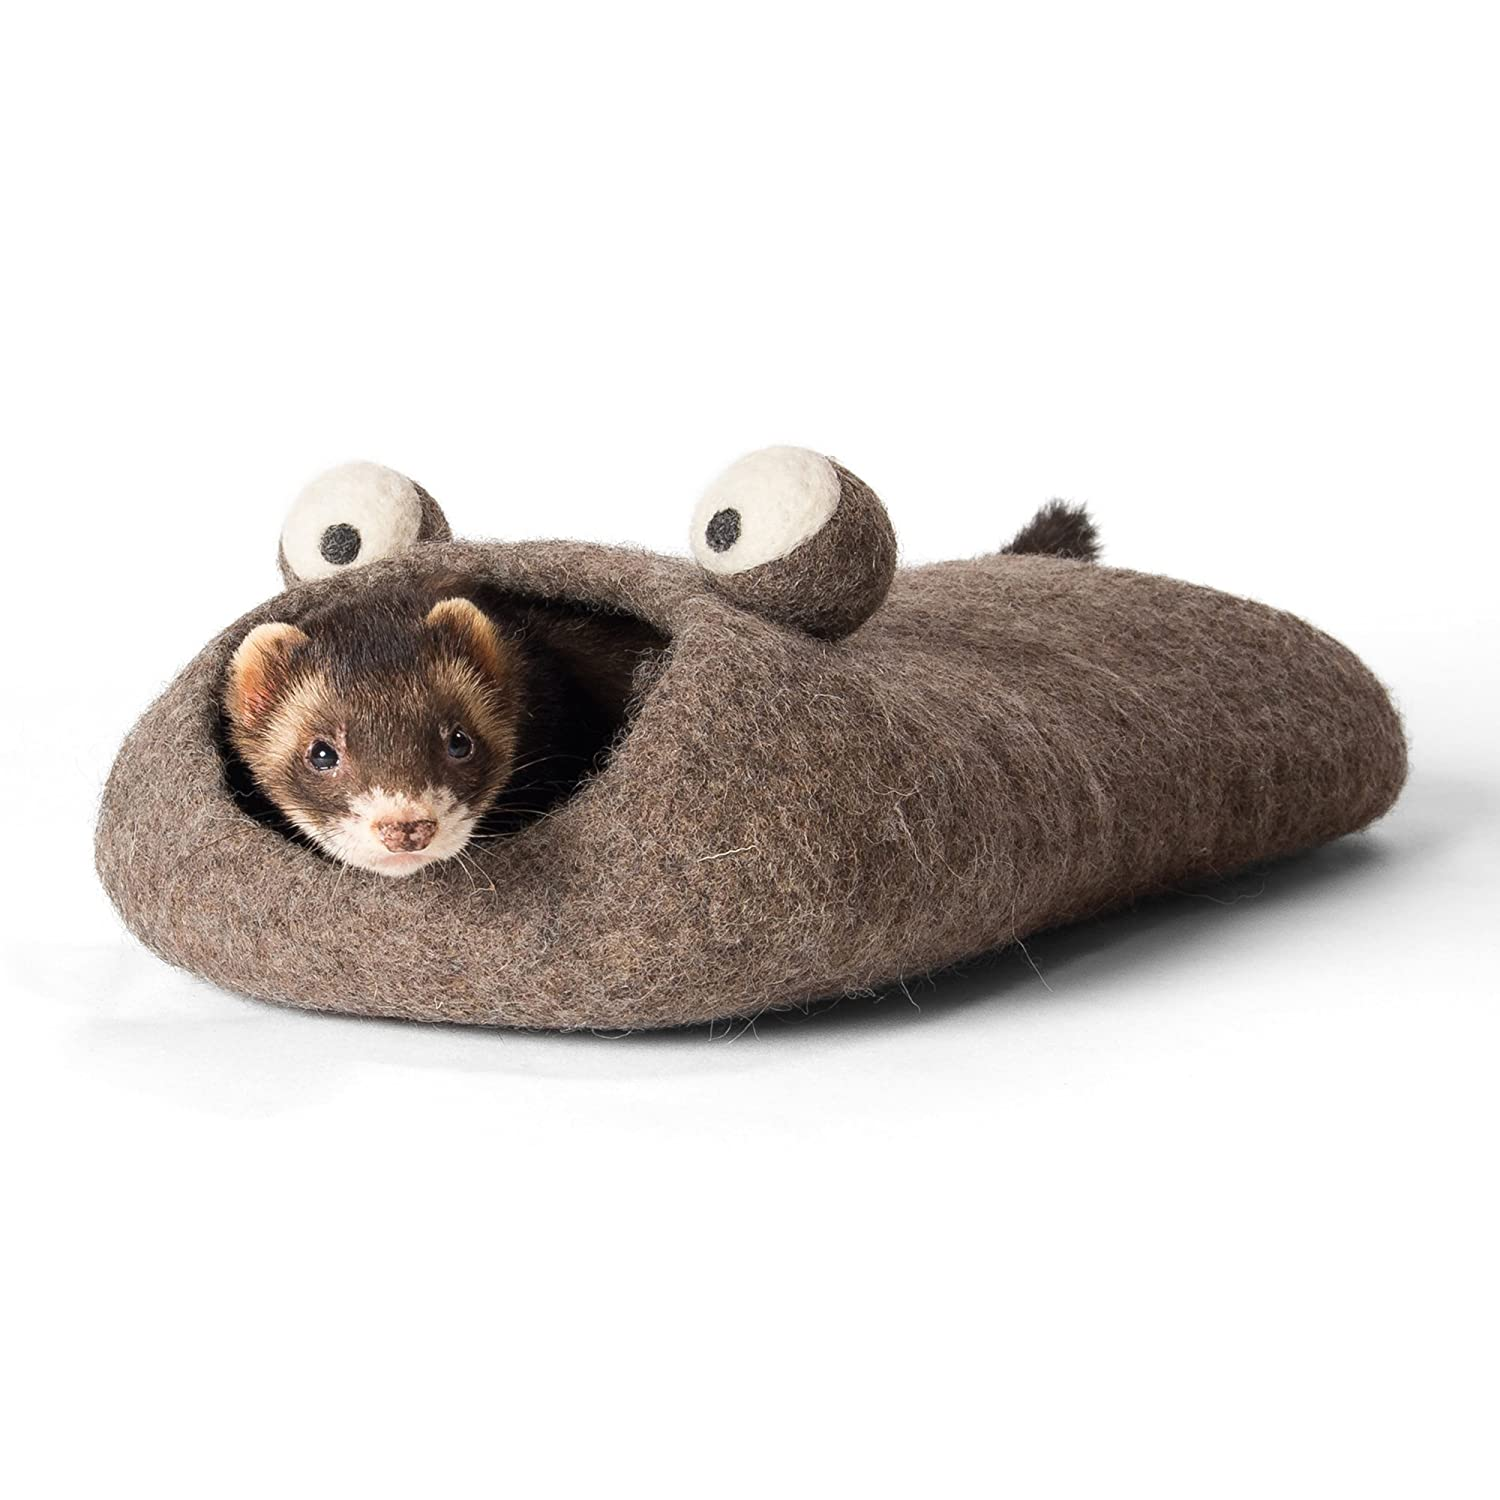 Raw Bark Twin Critters Handcrafted Ferret Cave Bed Tunnel for Ferrets (Raw Bark)